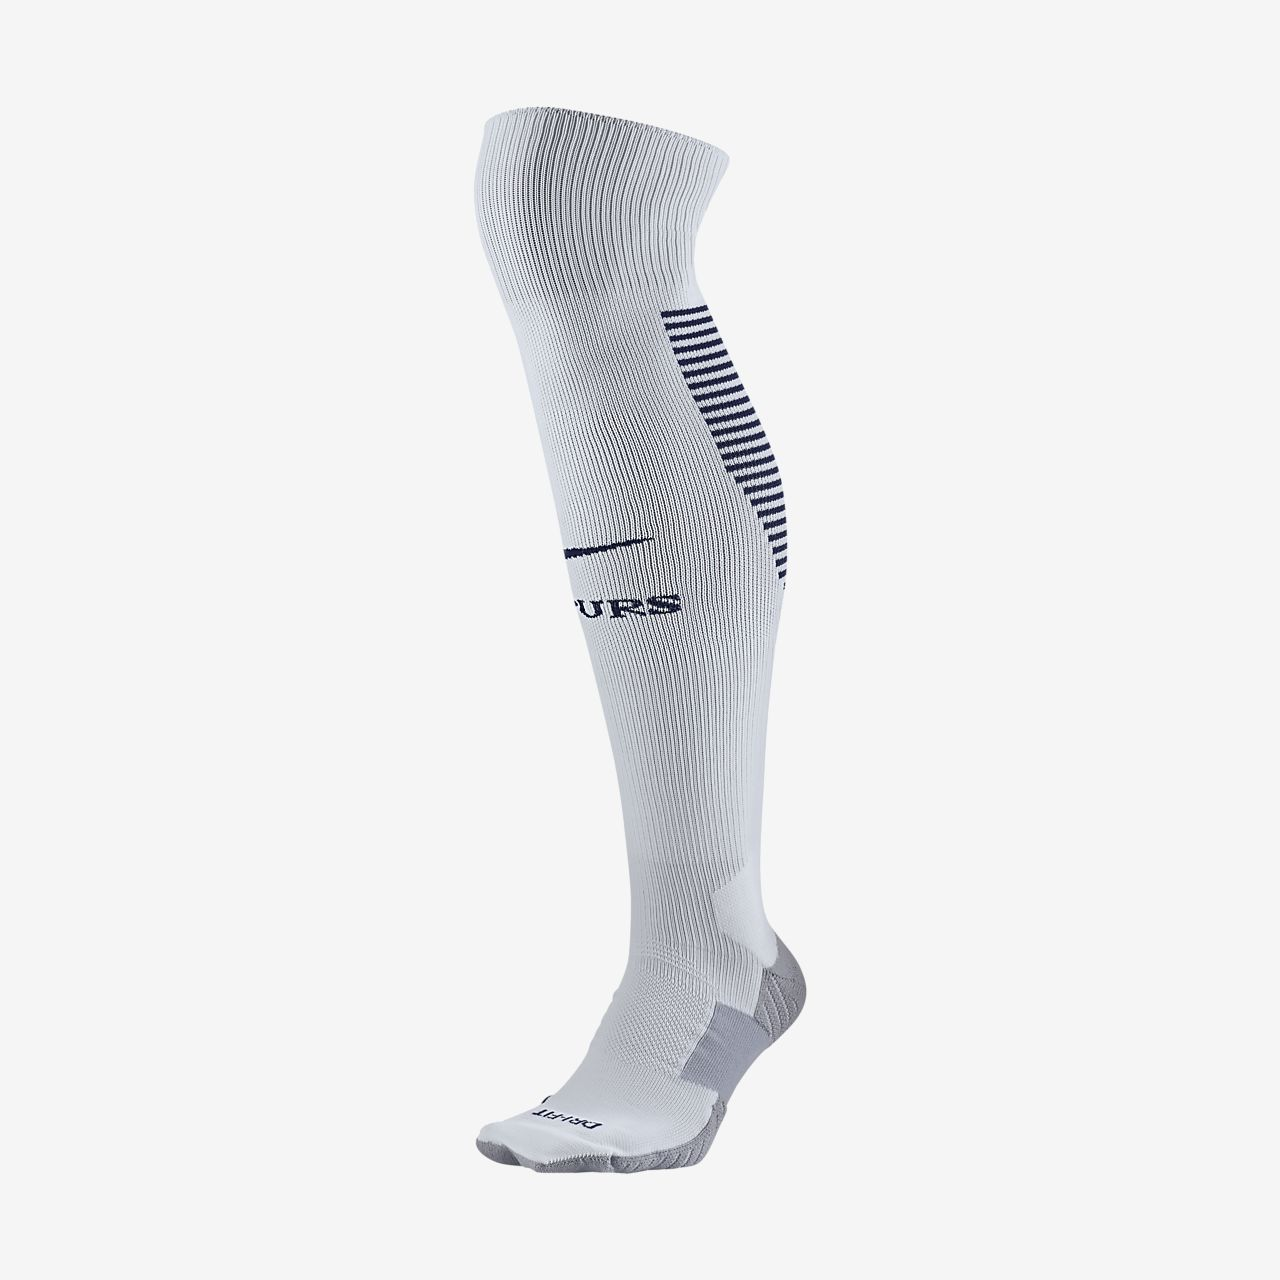 2017/18 Tottenham Hotspur Stadium Home/Away/Third OTC Football Socks